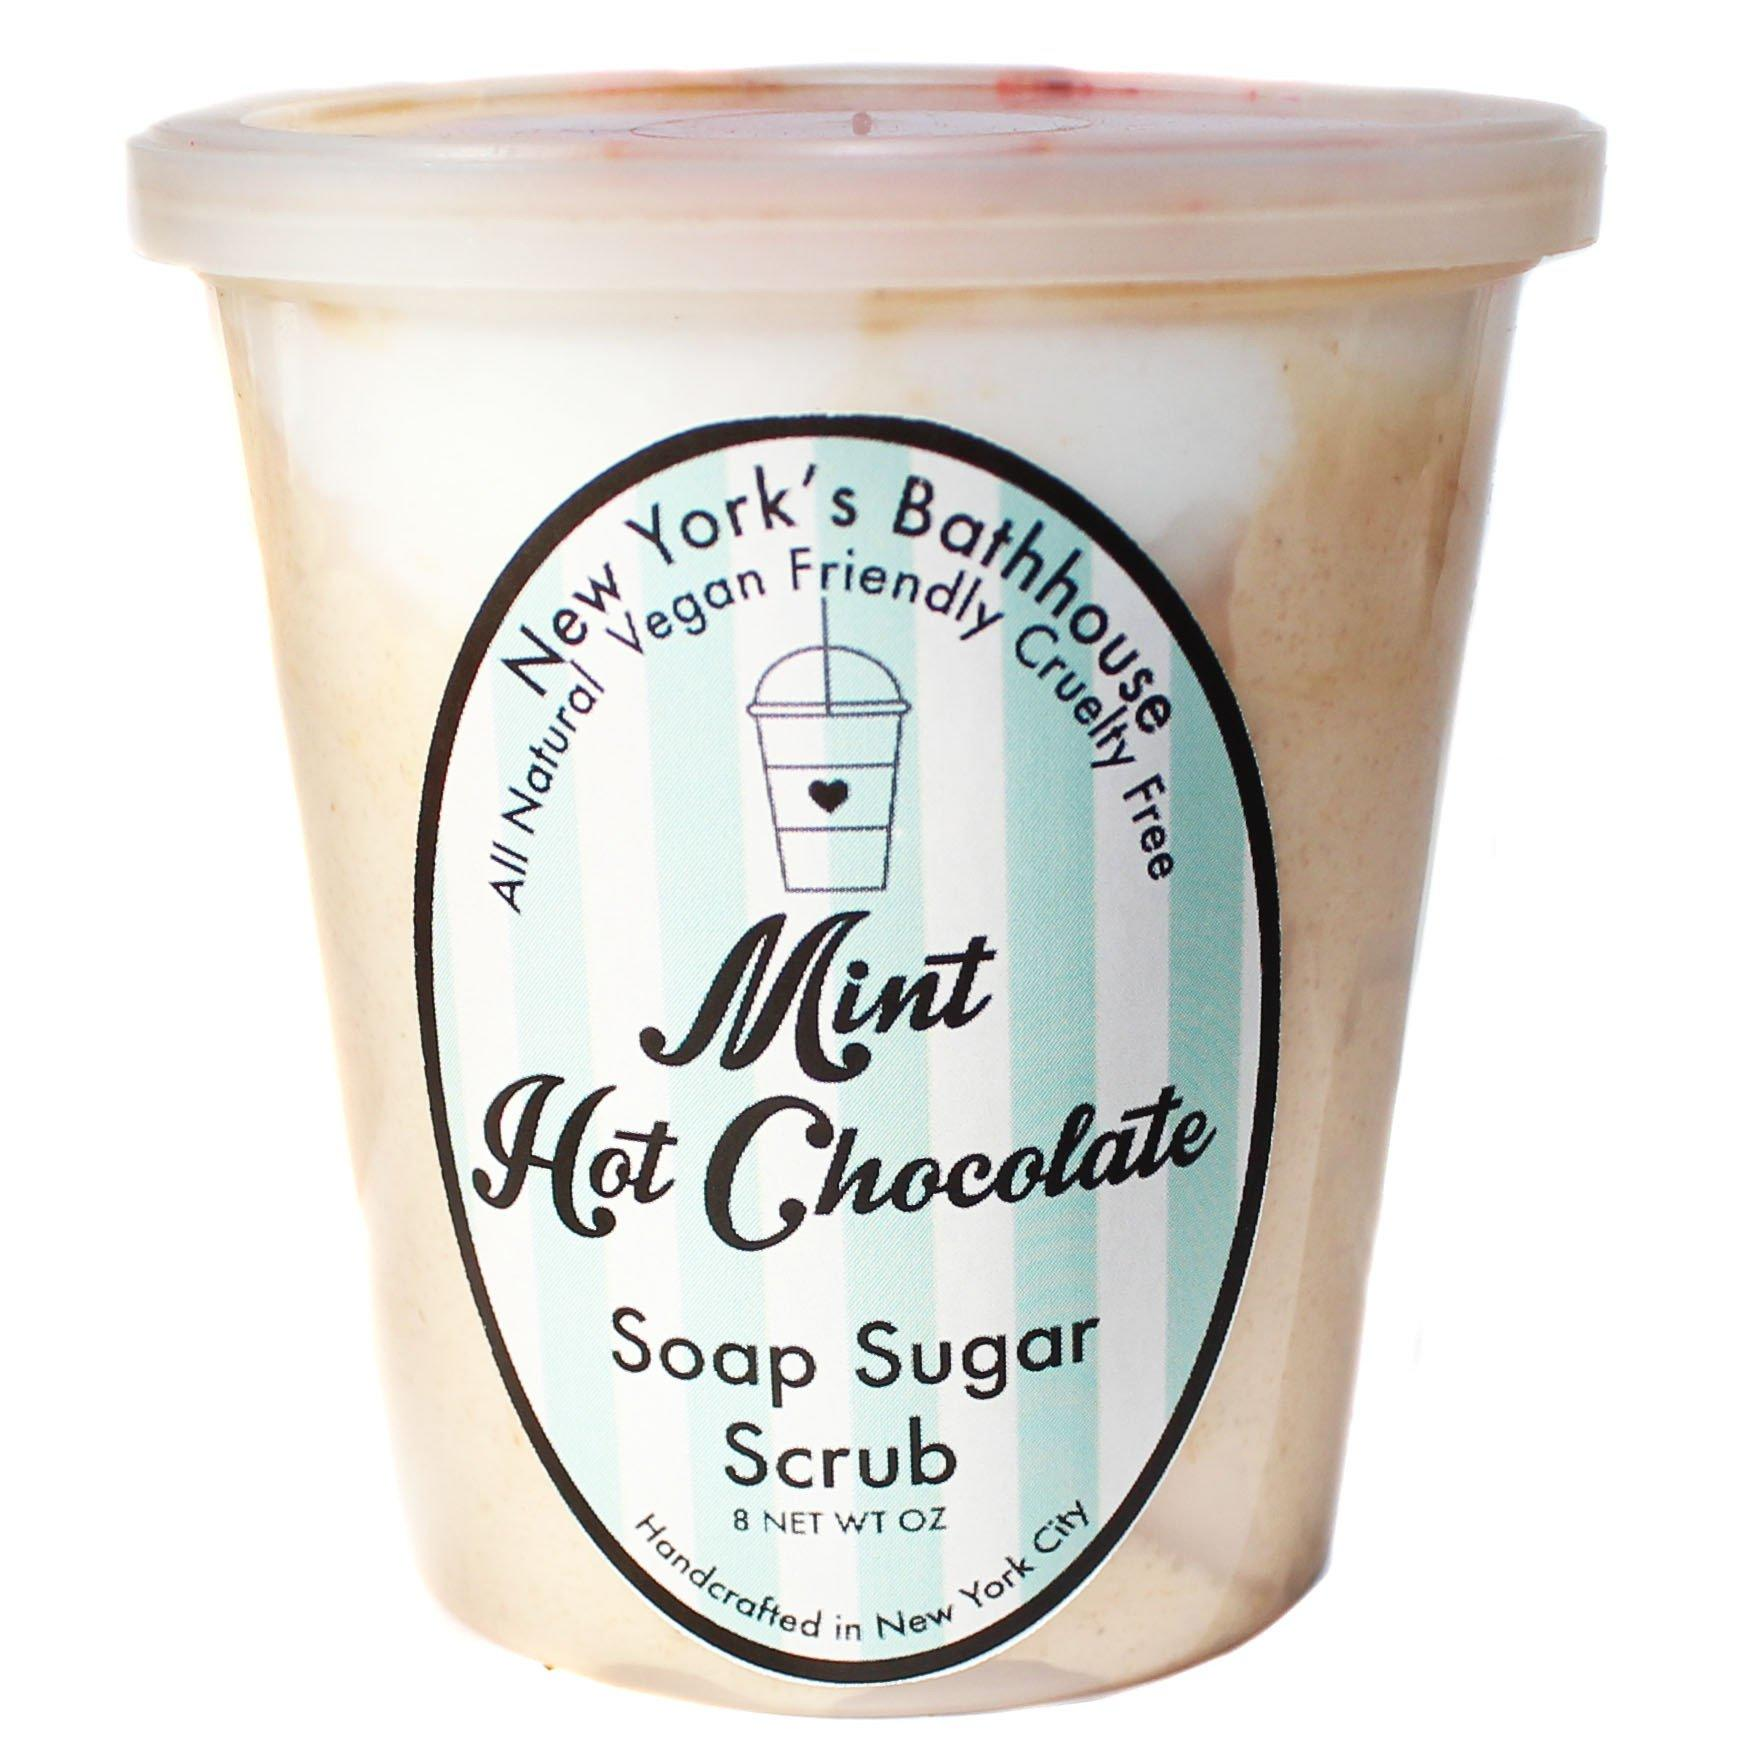 Image of Mint Hot Chocolate Whipped Soap Sugar Scrub